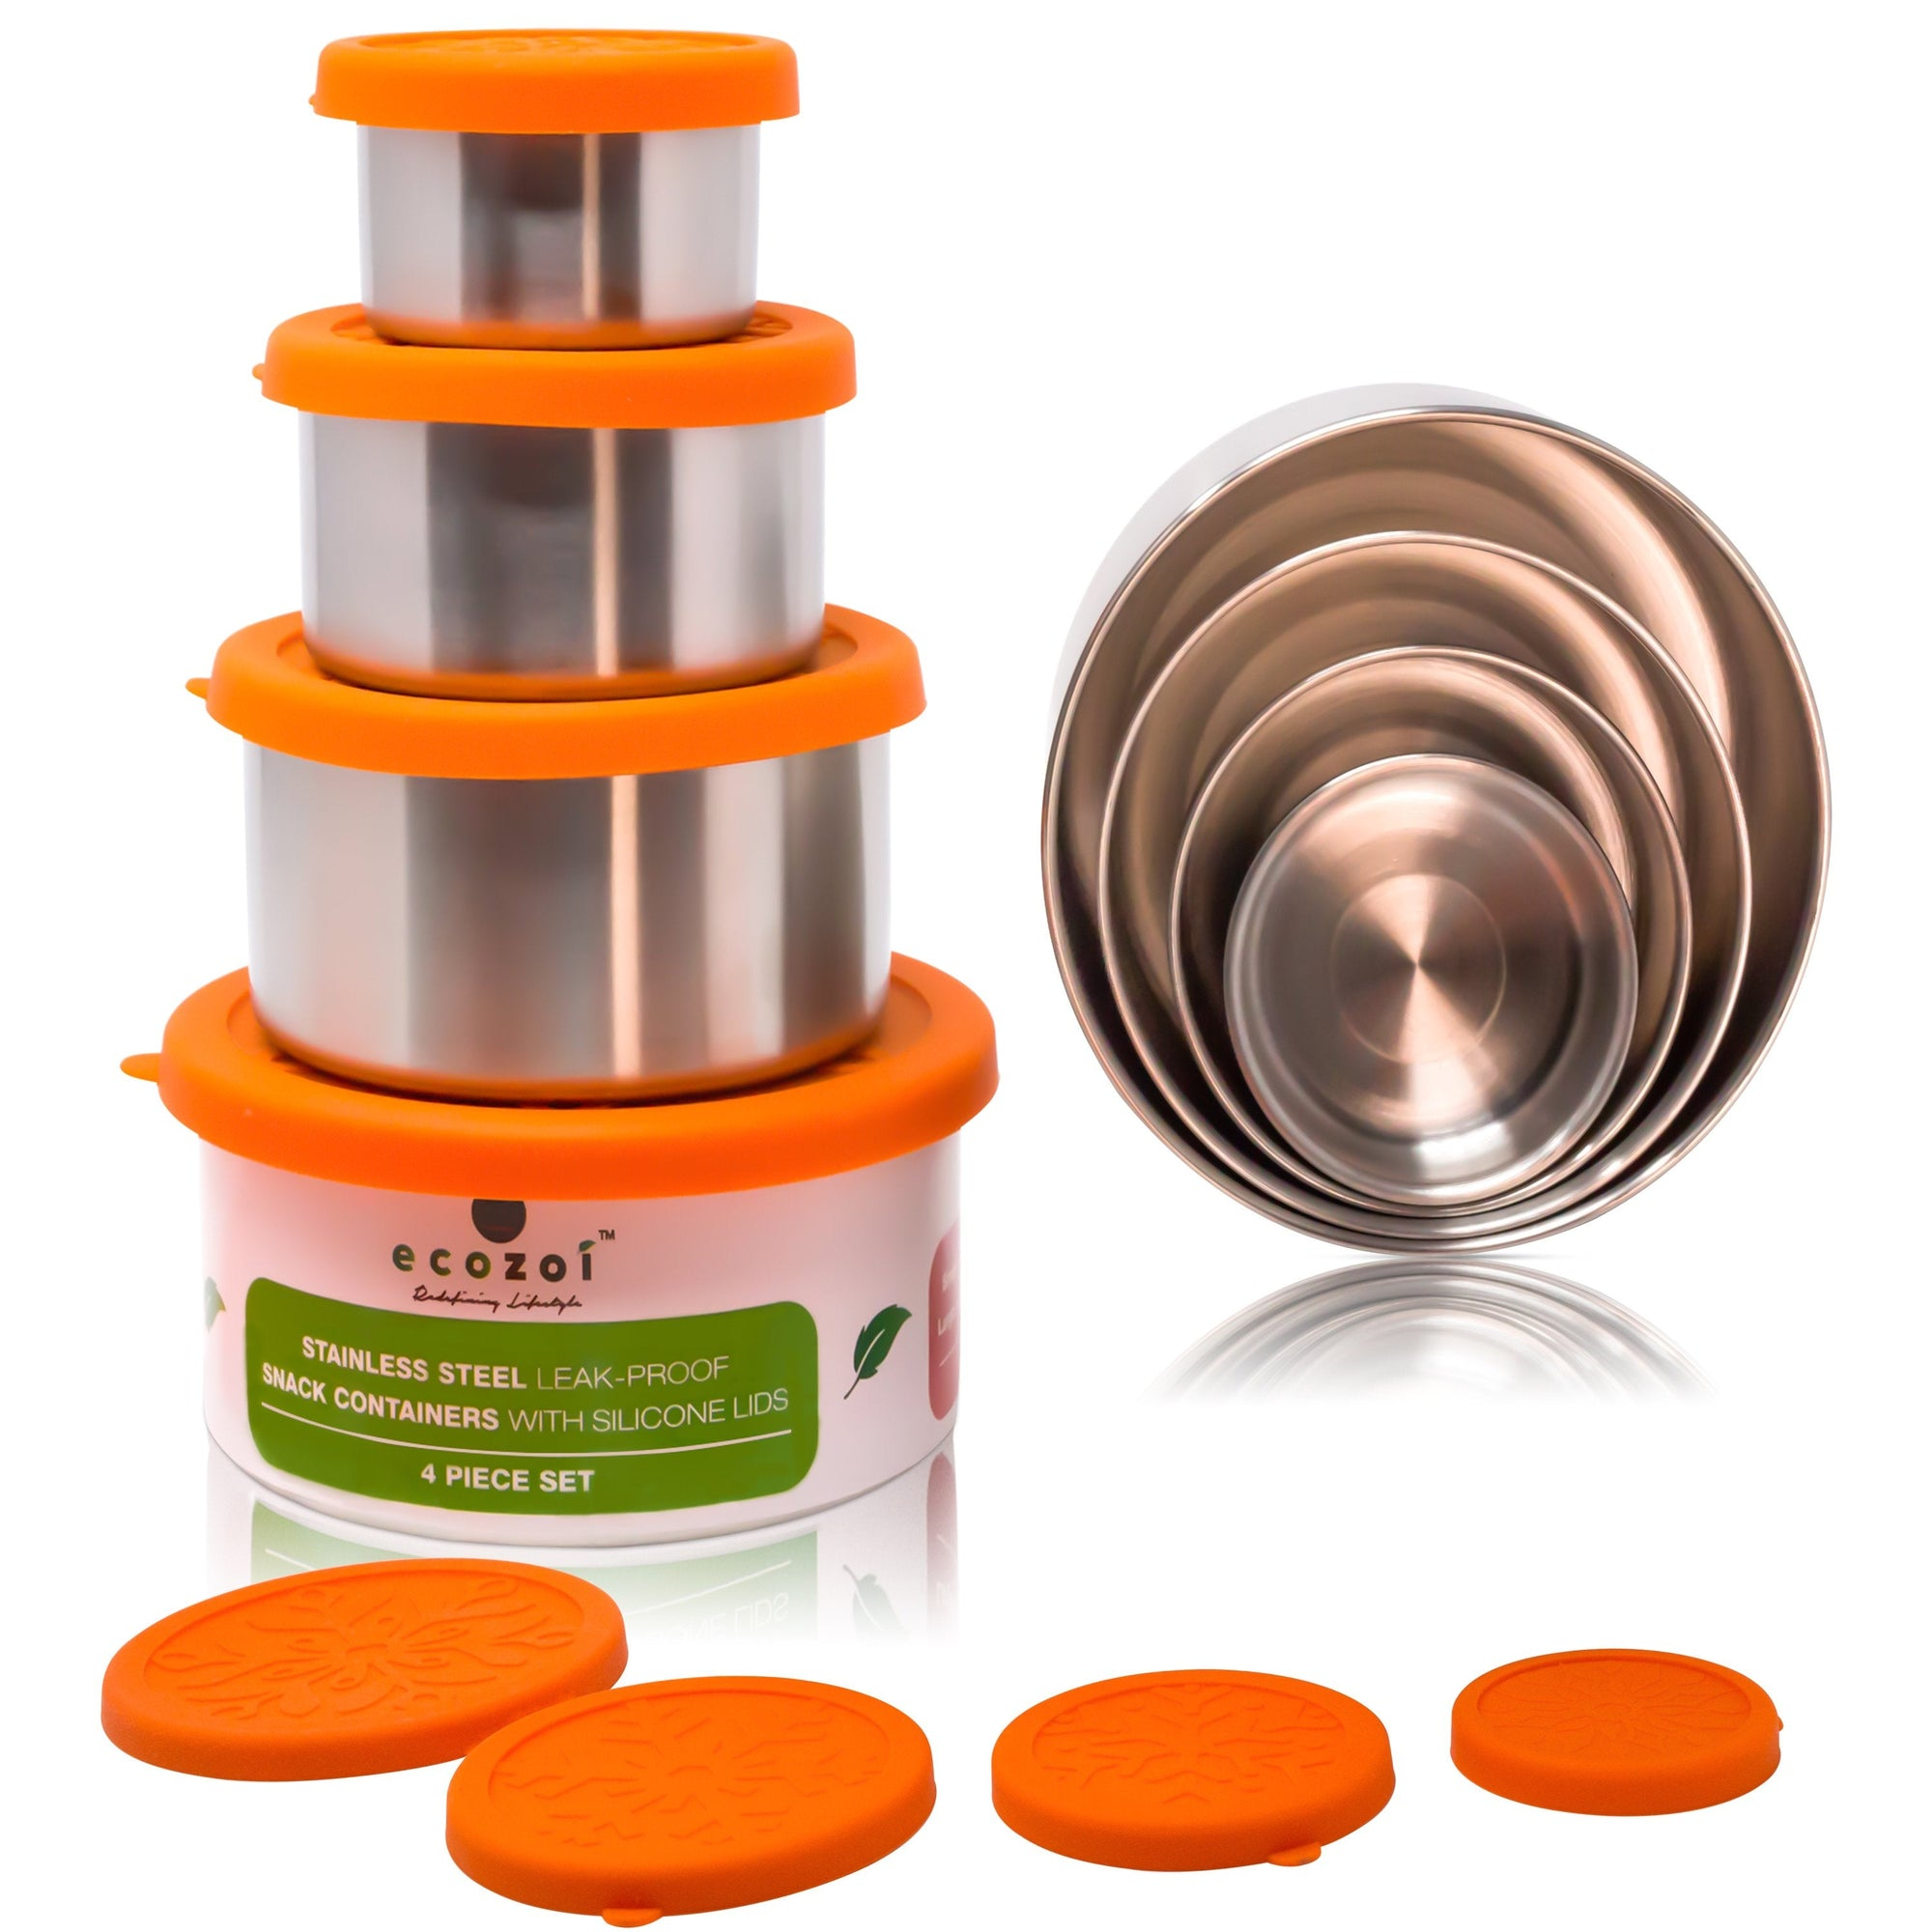 Stainless Steel Snack Containers Set of 4 - LEAK PROOF